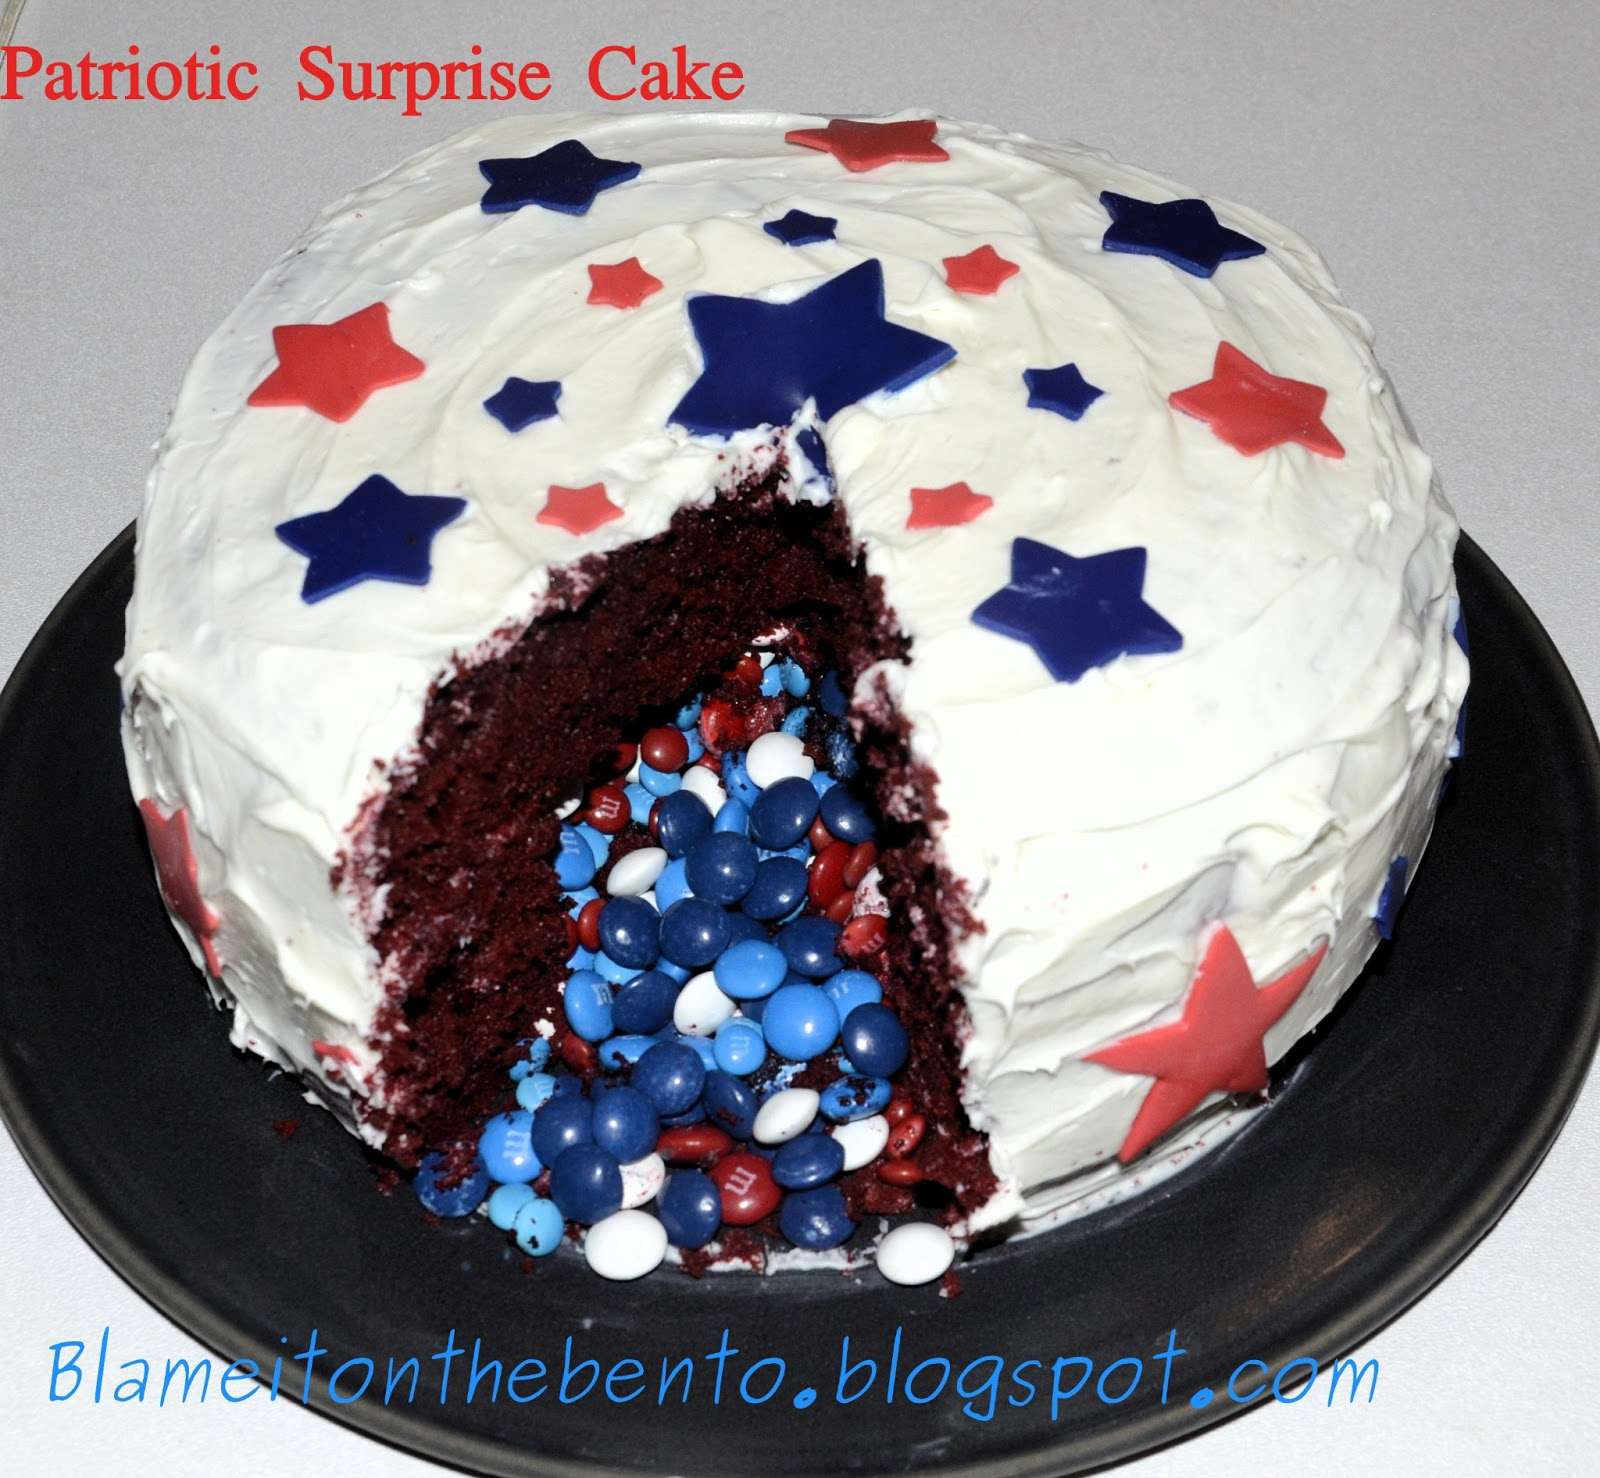 Blame it on the bento: Patriotic Surprise Cake Cake